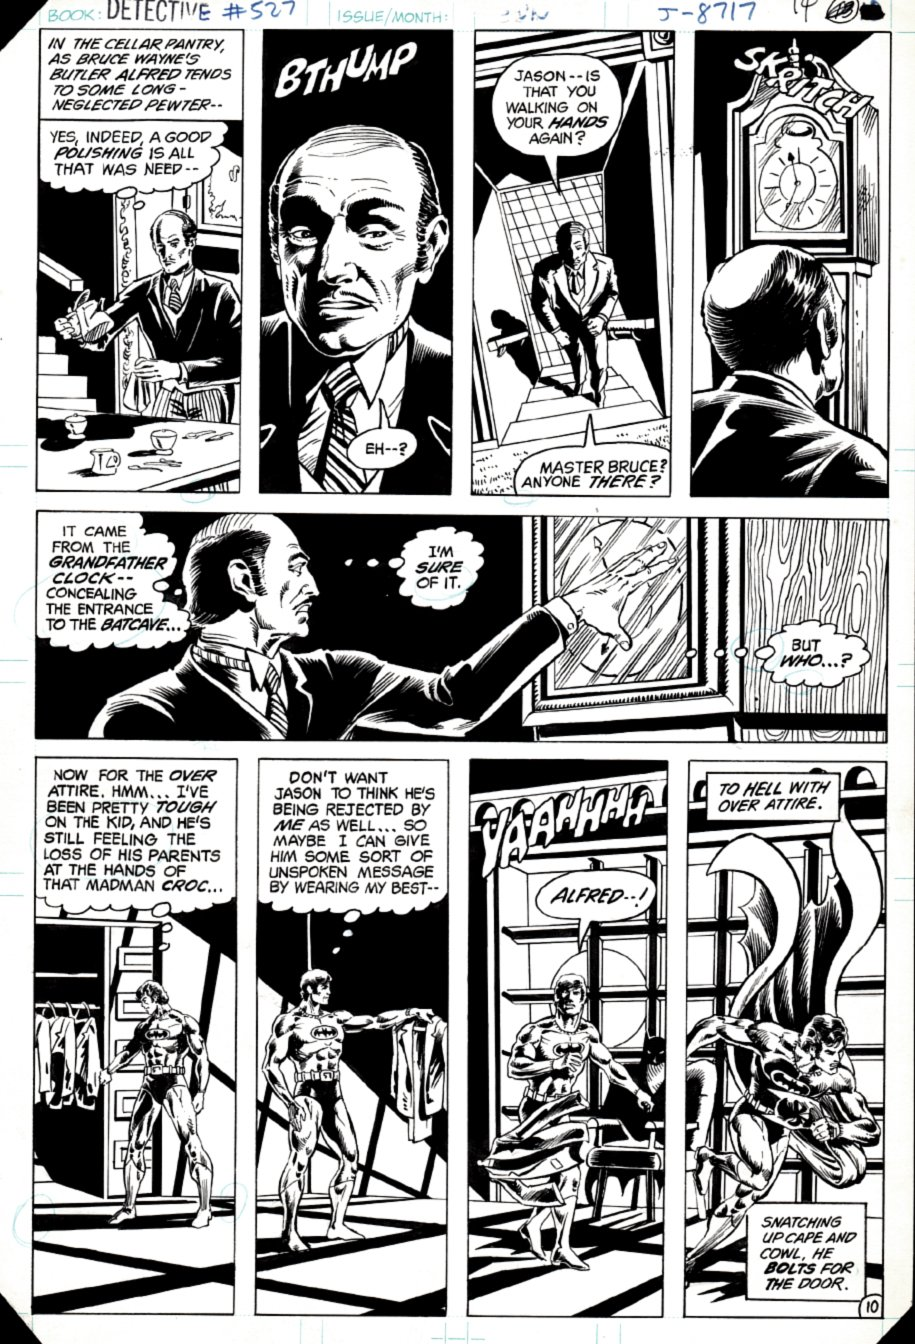 Detective Comics #527 p 10 (SOLD LIVE ON 'DUELING DEALERS OF COMIC ART' EPISODE #8 PODCAST ON 3-17-2021 (RE-WATCH OUR LIVE ART PODCAST HERE!)